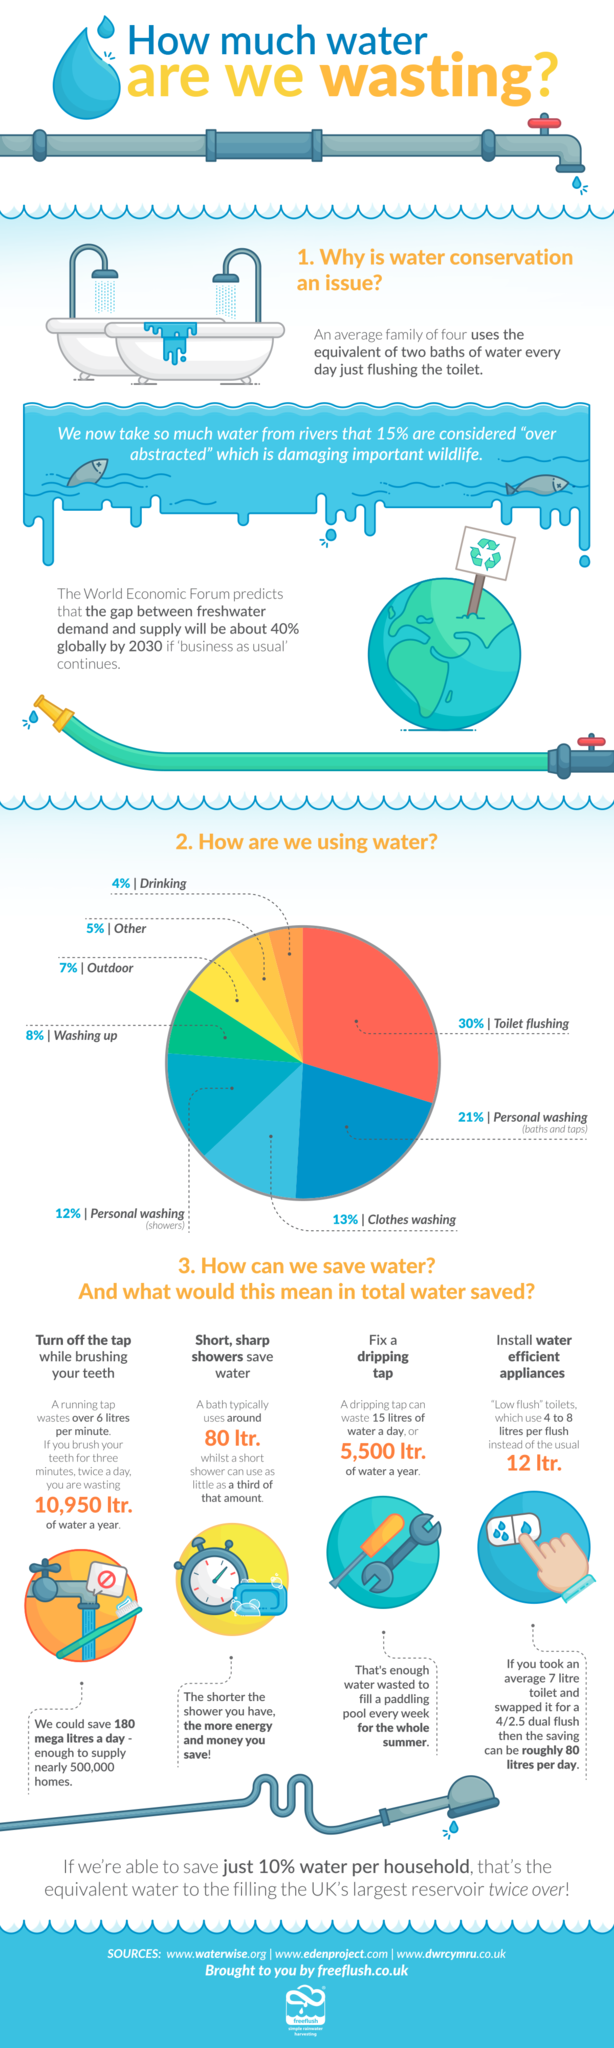 How Much Water Are We Wasting?